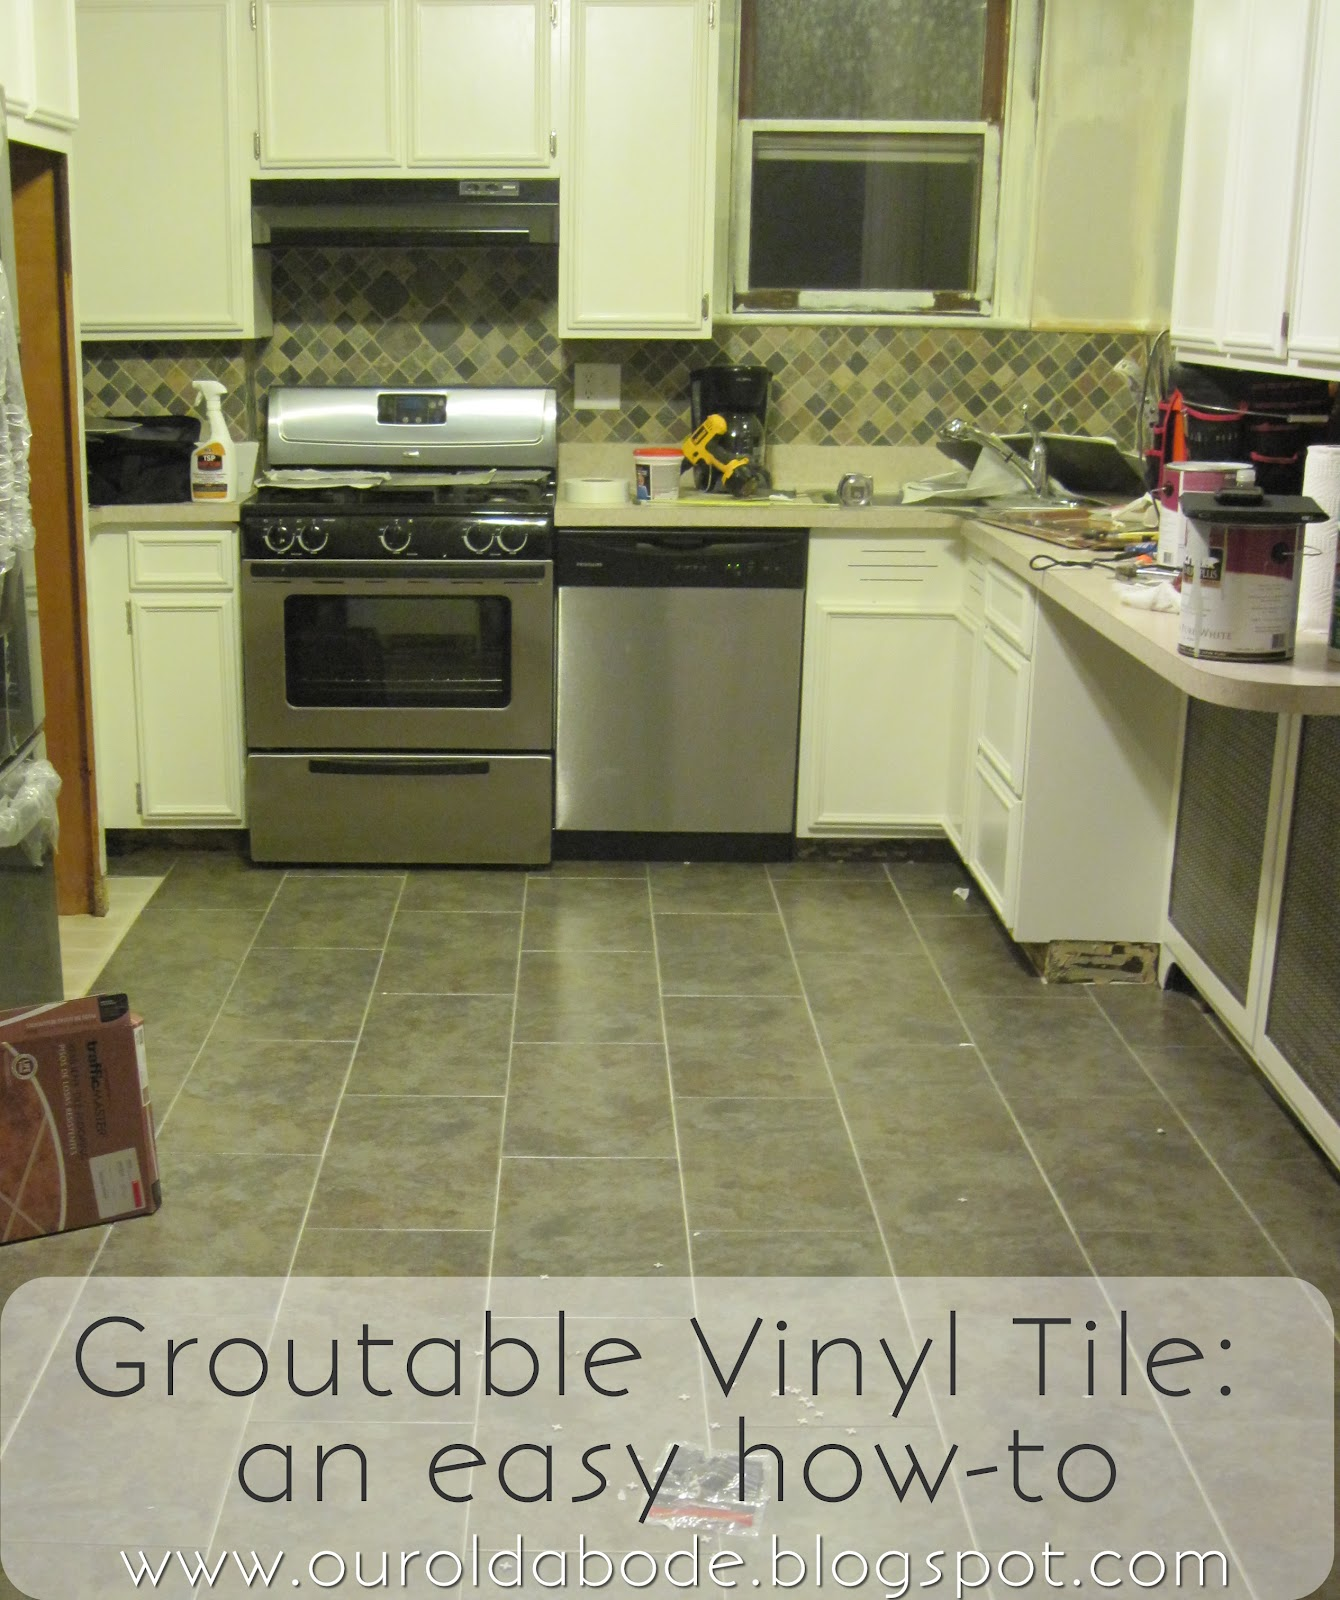 Vinyl Kitchen Flooring Aid Walmart Our Old Abode Floor Groutable Tile